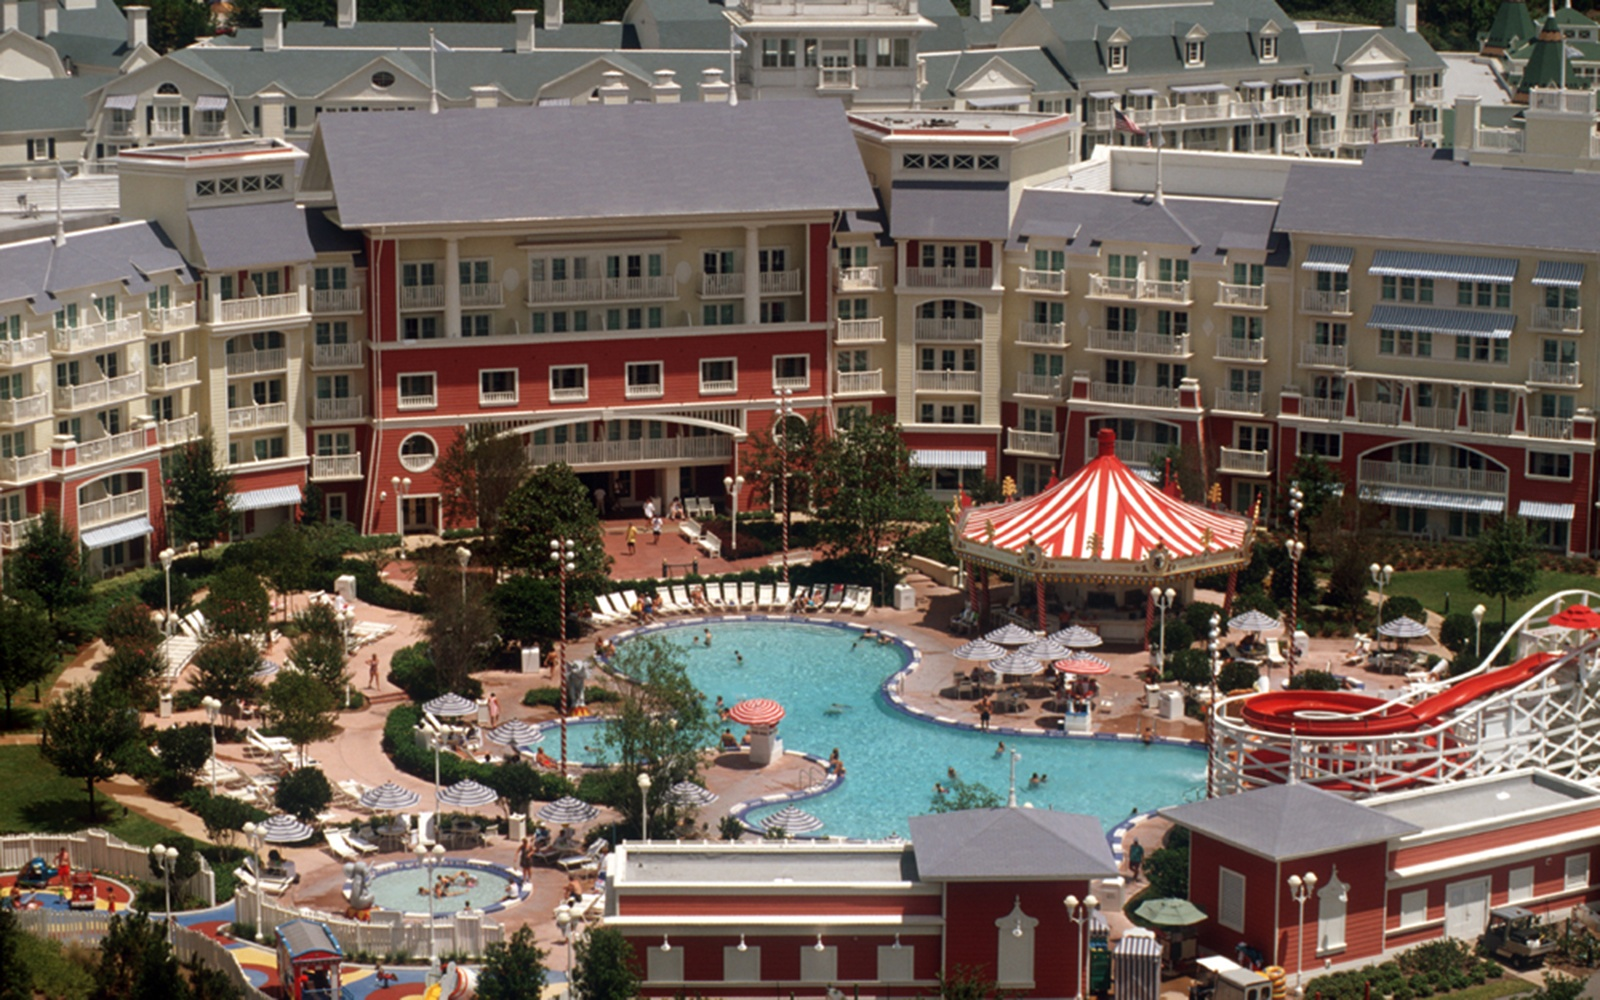 No. 16 Disney's Boardwalk Inn and Villas, Lake Buena Vista, FL